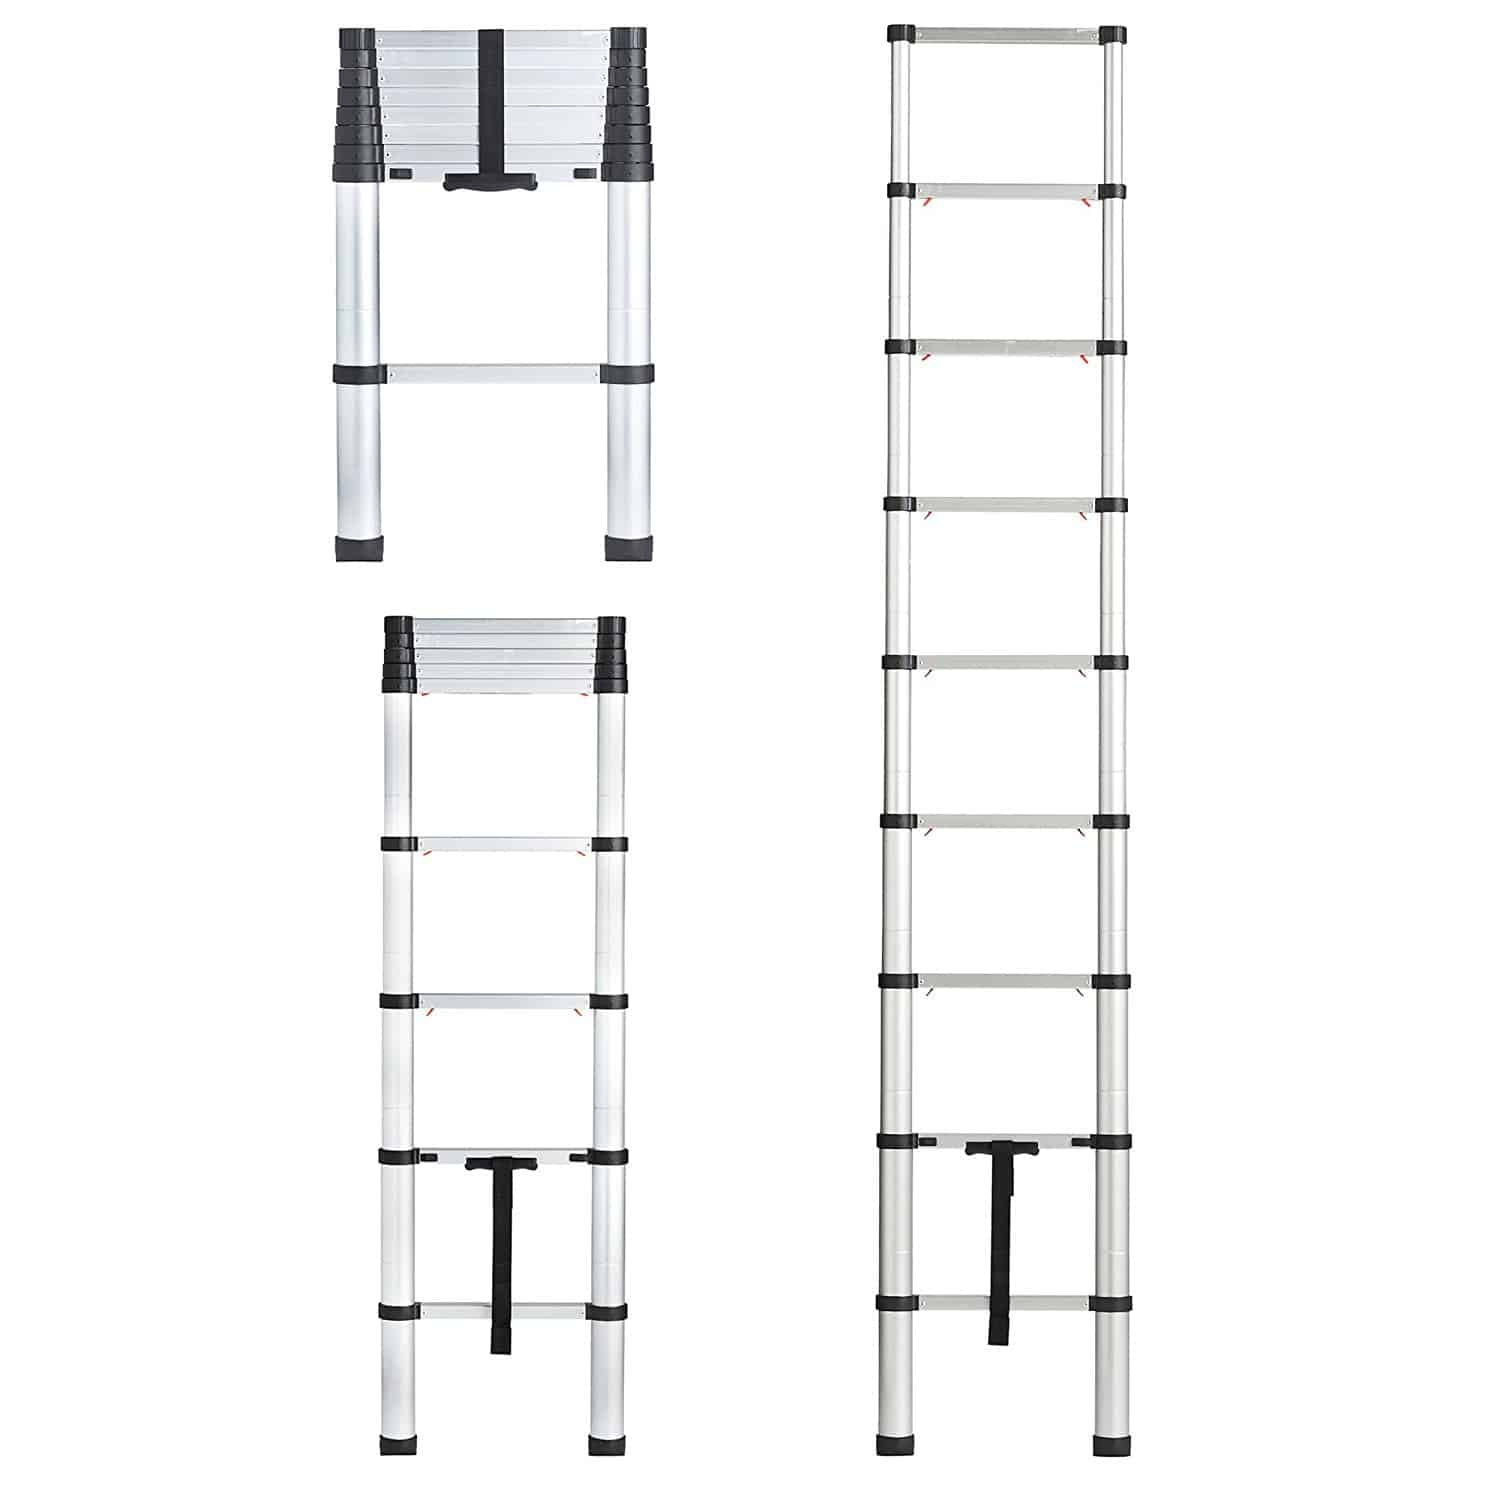 Best Telescopic Ladder for the Money – VonHaus